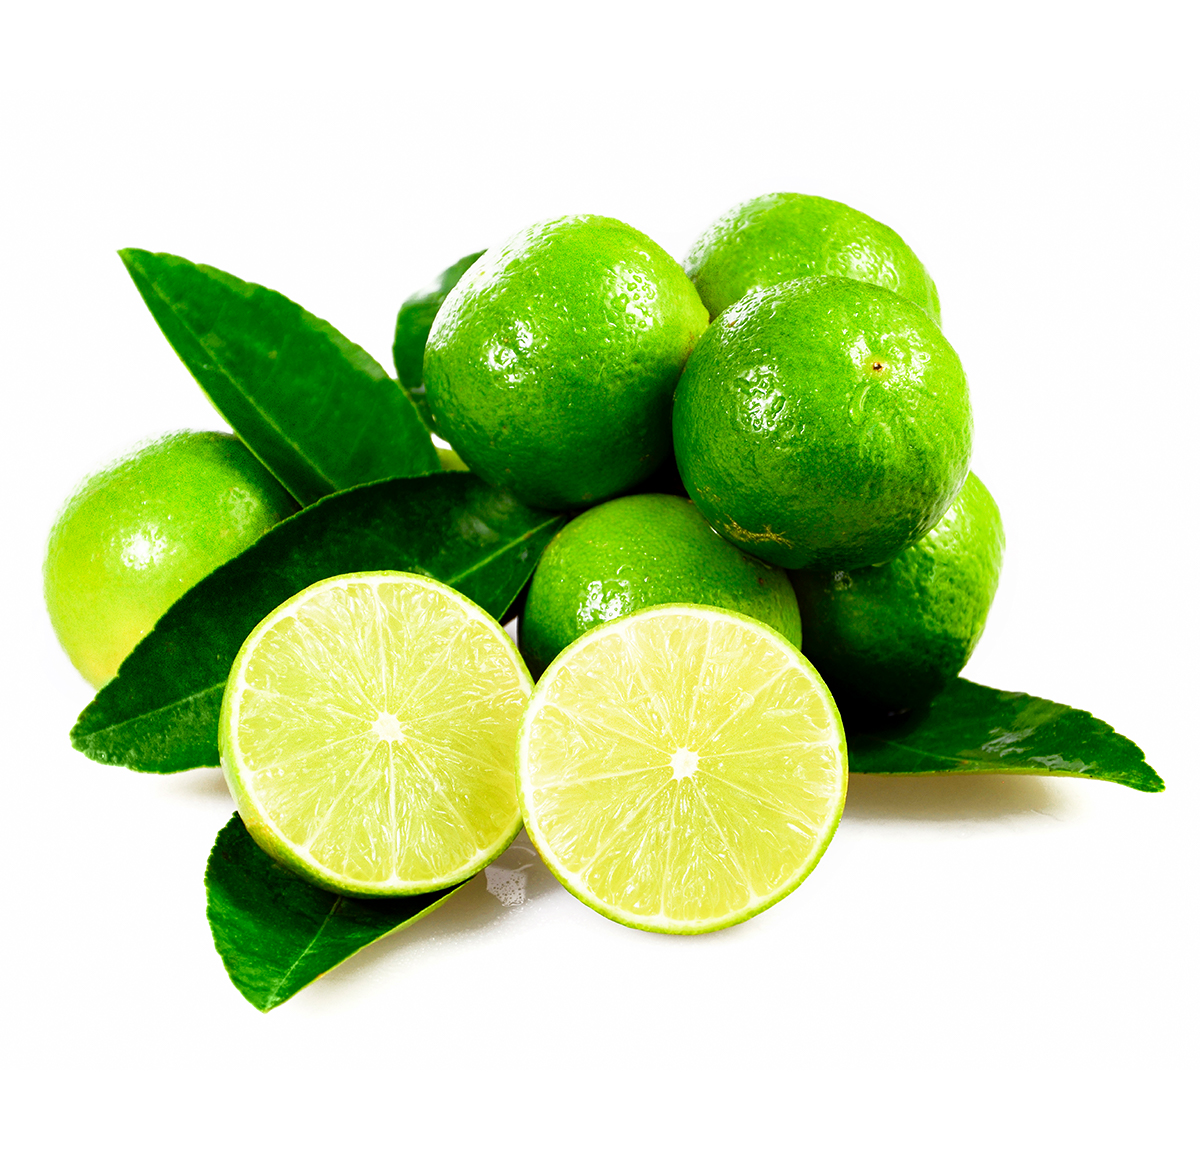 Mexican key limes make for an amazing pie